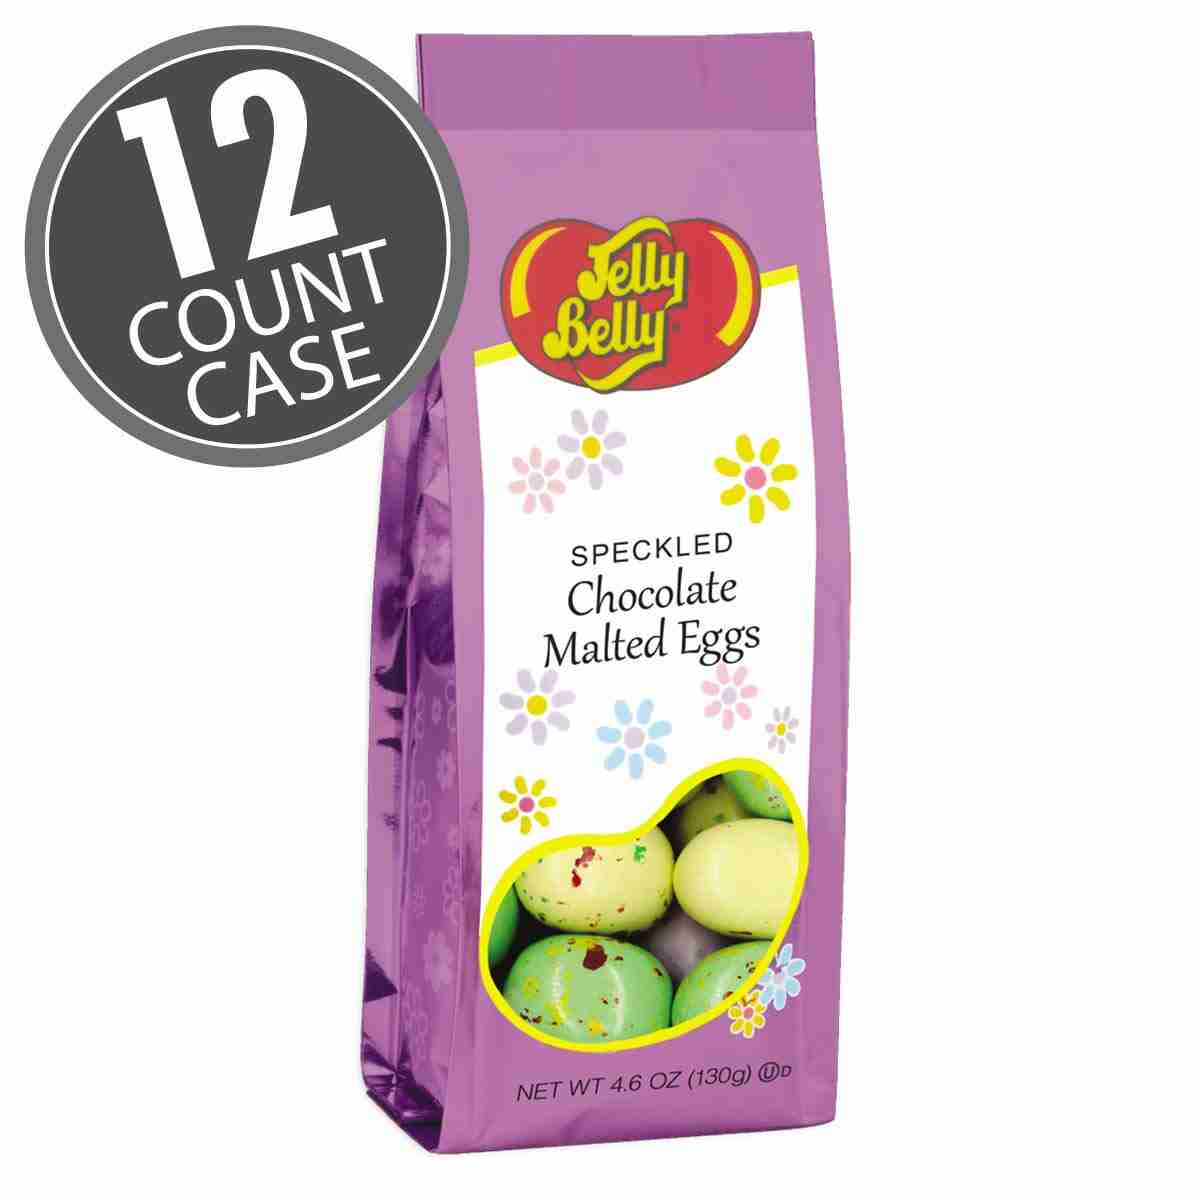 Speckled Chocolate Malted Eggs - 4.6 oz Bags - 12 Count Case